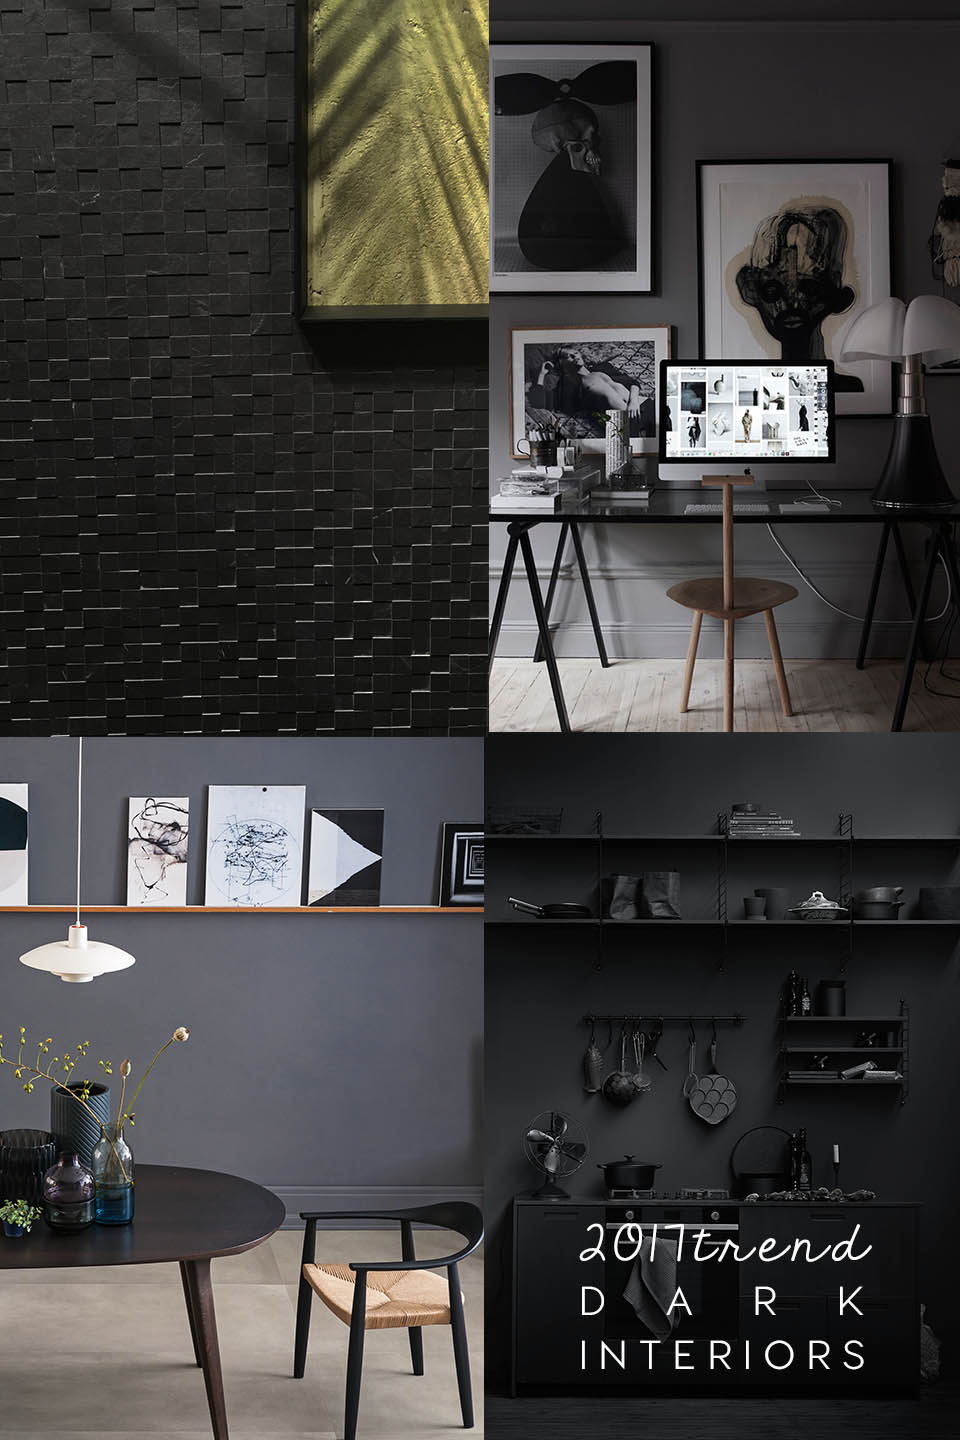 dark interiors, interior trends, italianbark interior design blog